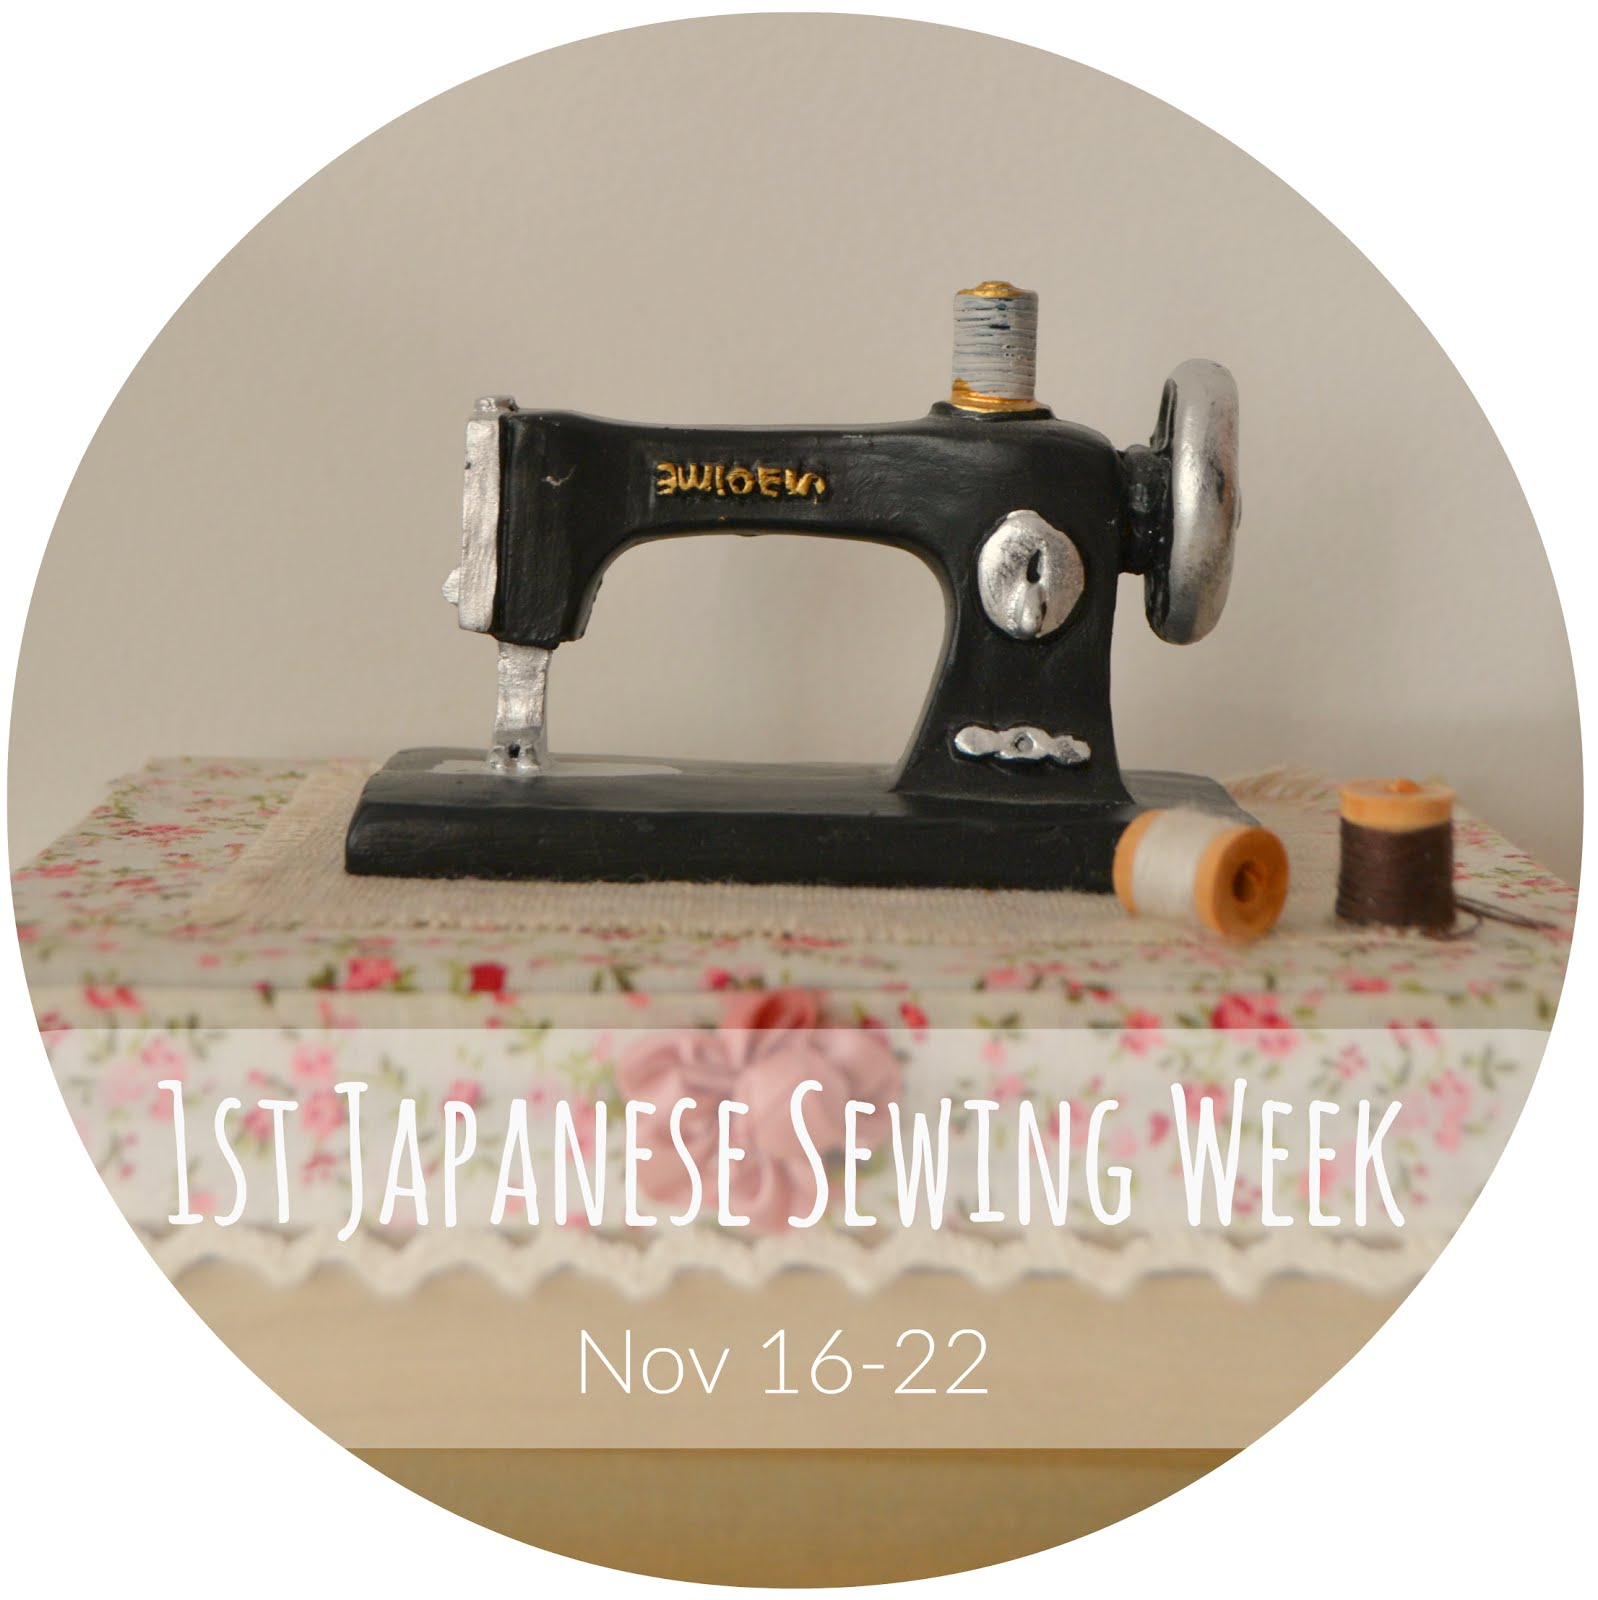 Japanese Sewing Week Blog Tour